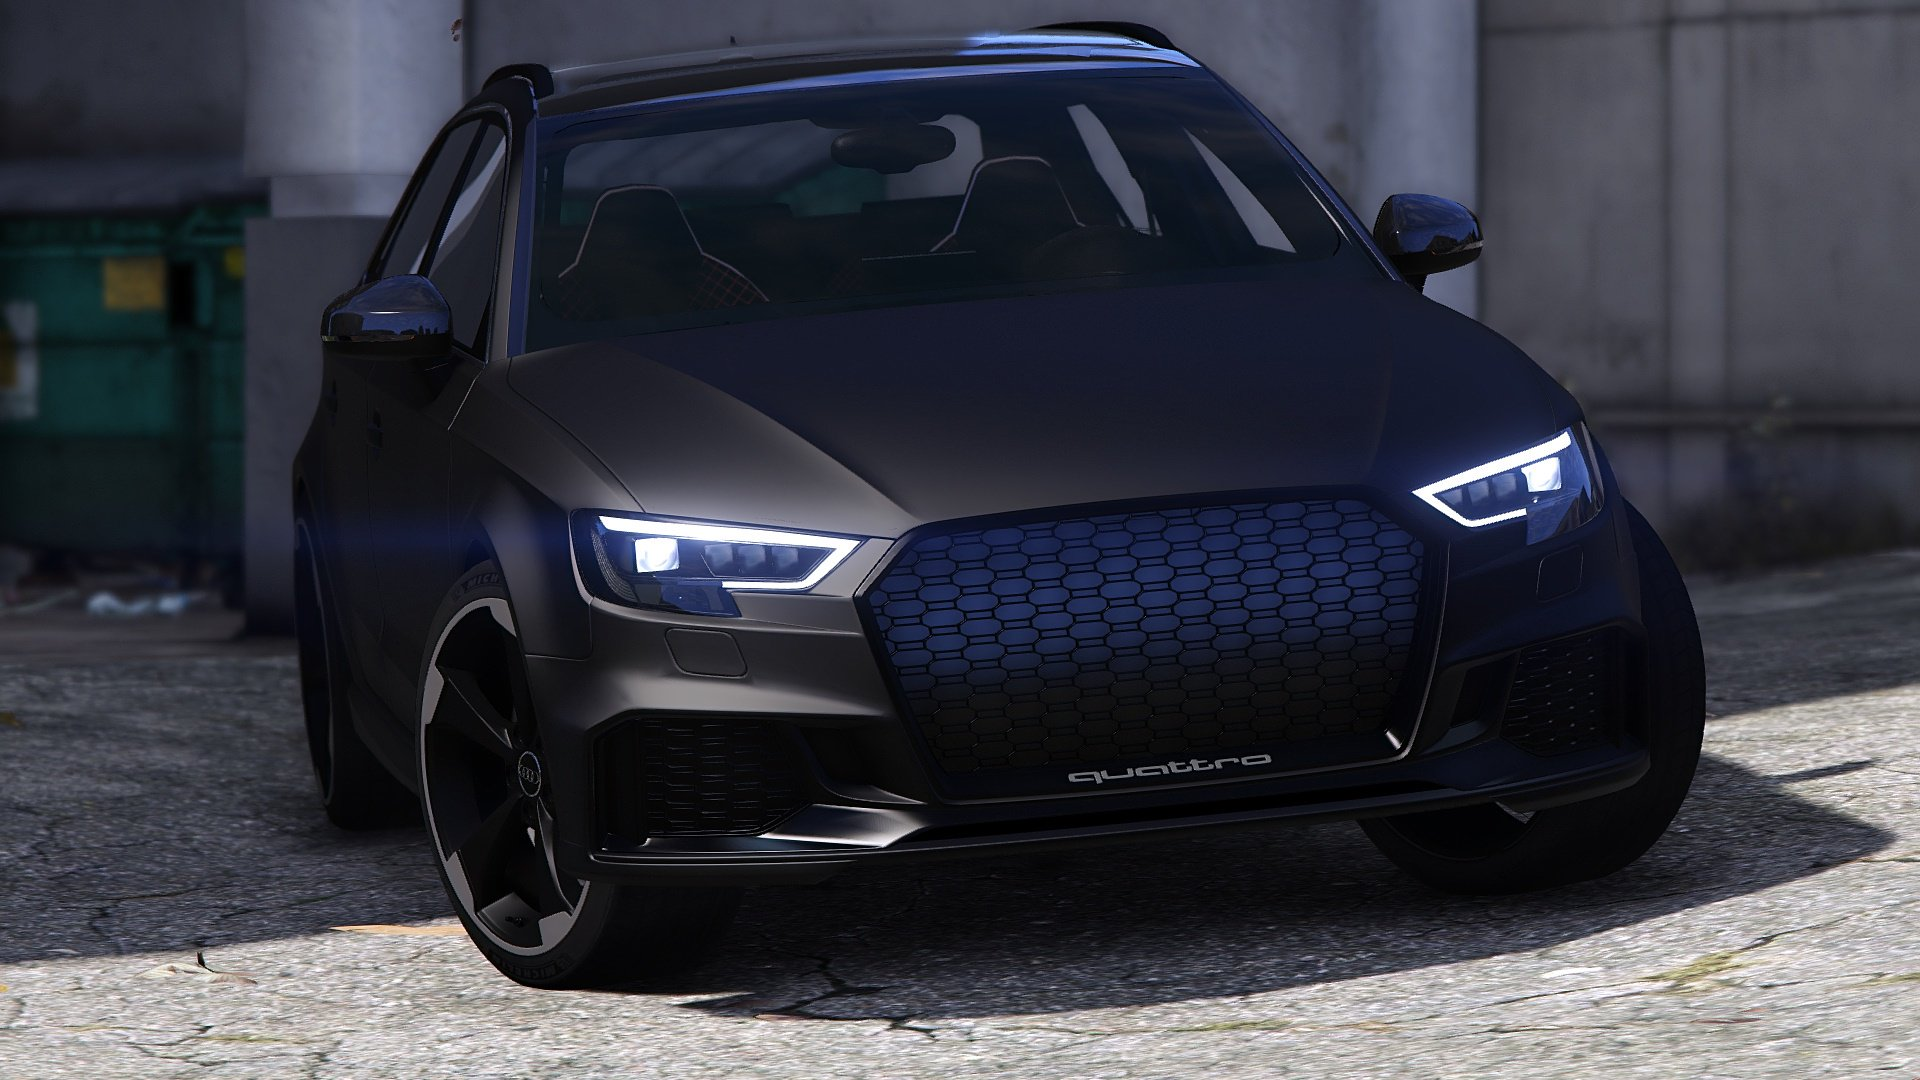 audi rs3 sportback 2018 v hicules t l chargements gta 5. Black Bedroom Furniture Sets. Home Design Ideas